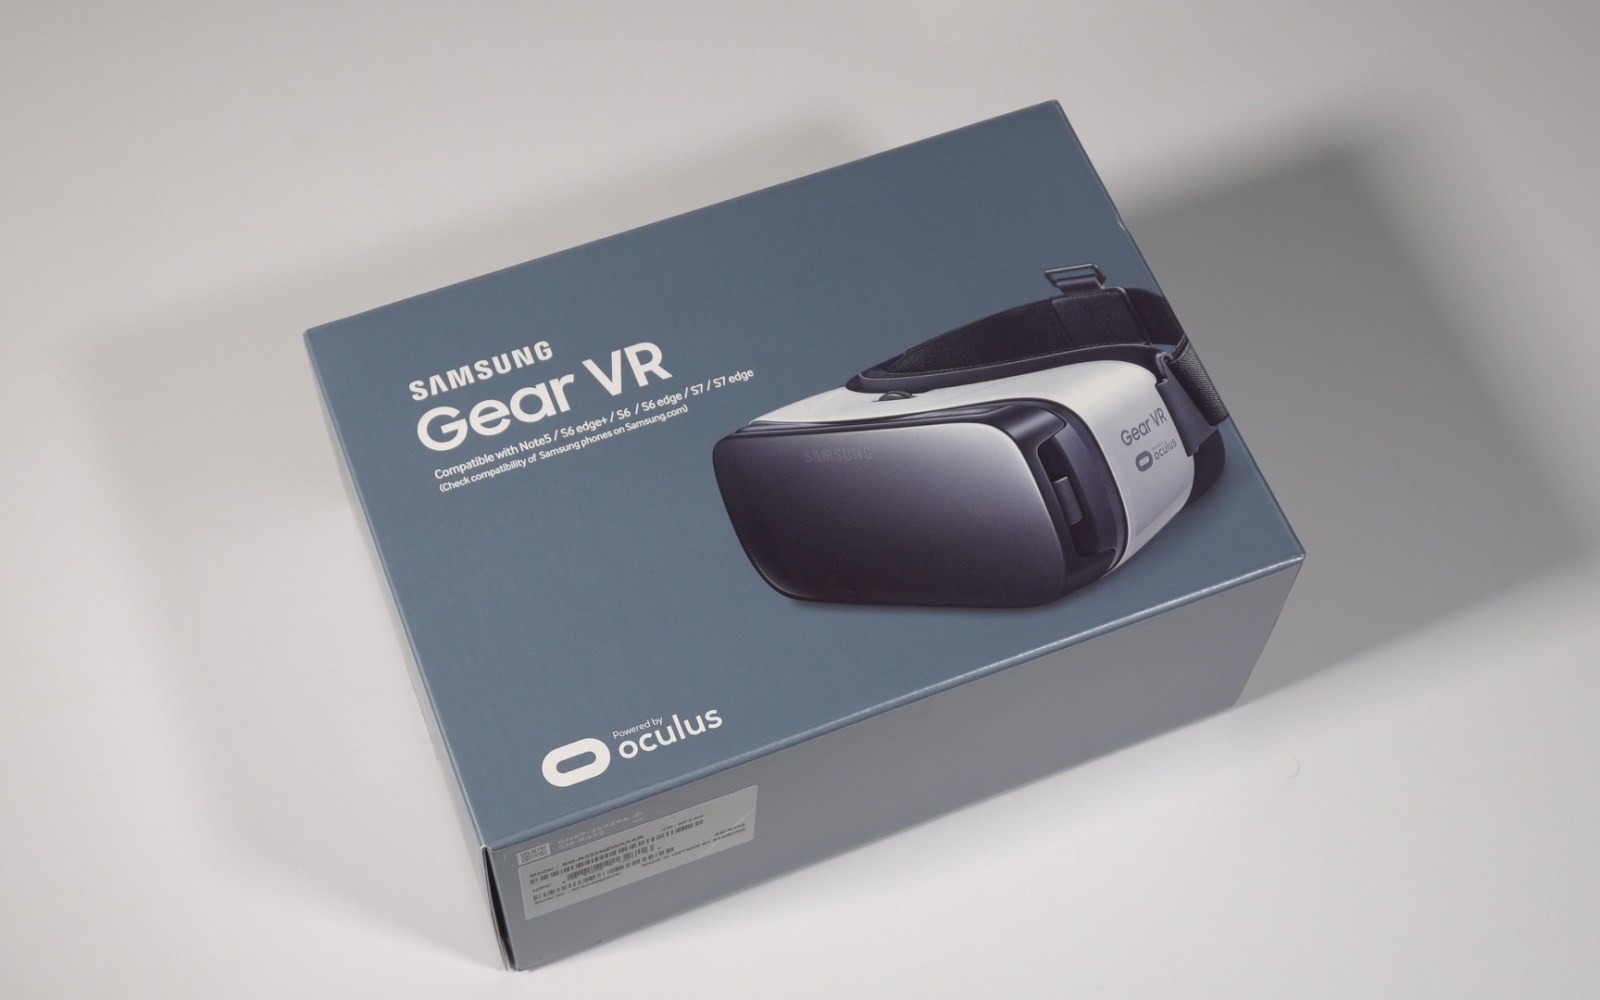 Hands-on: Samsung Gear VR unboxing and impressions